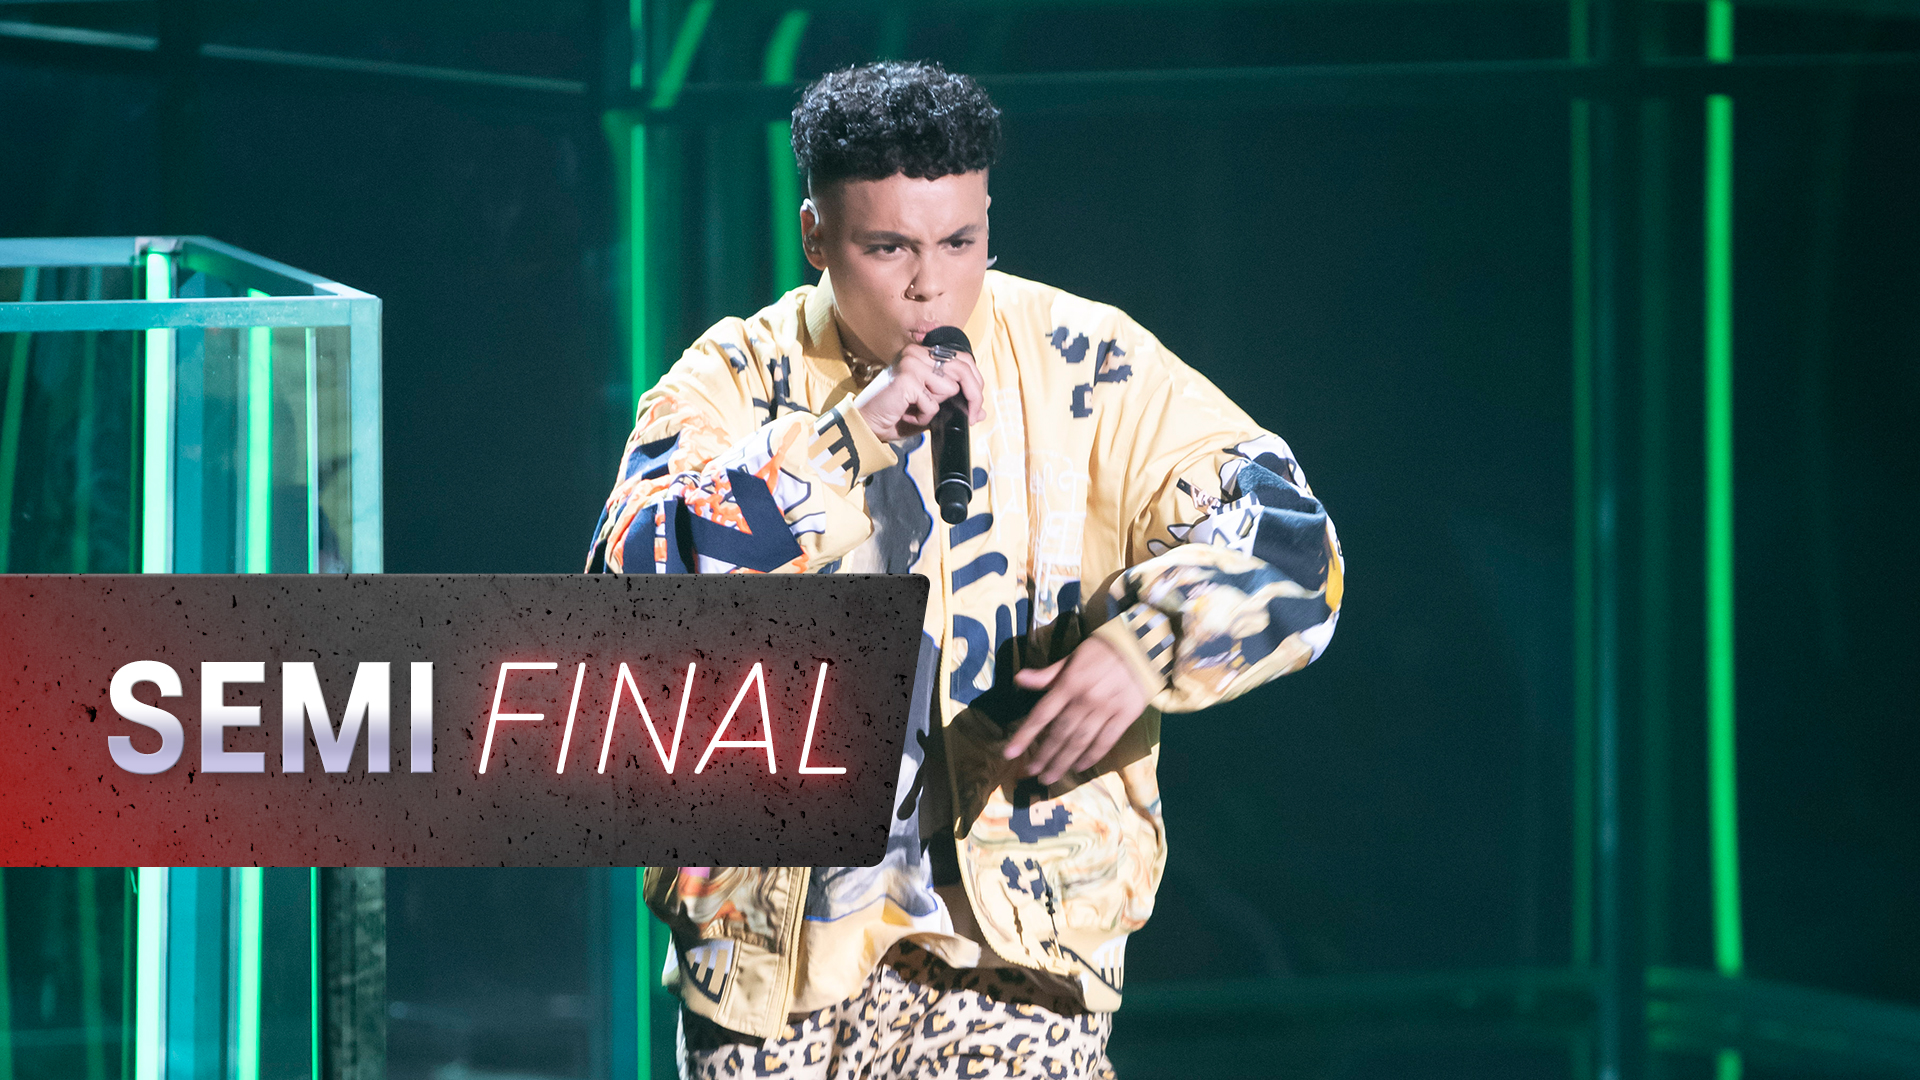 Semi Final: Siala Robson 'Where is the Love?'